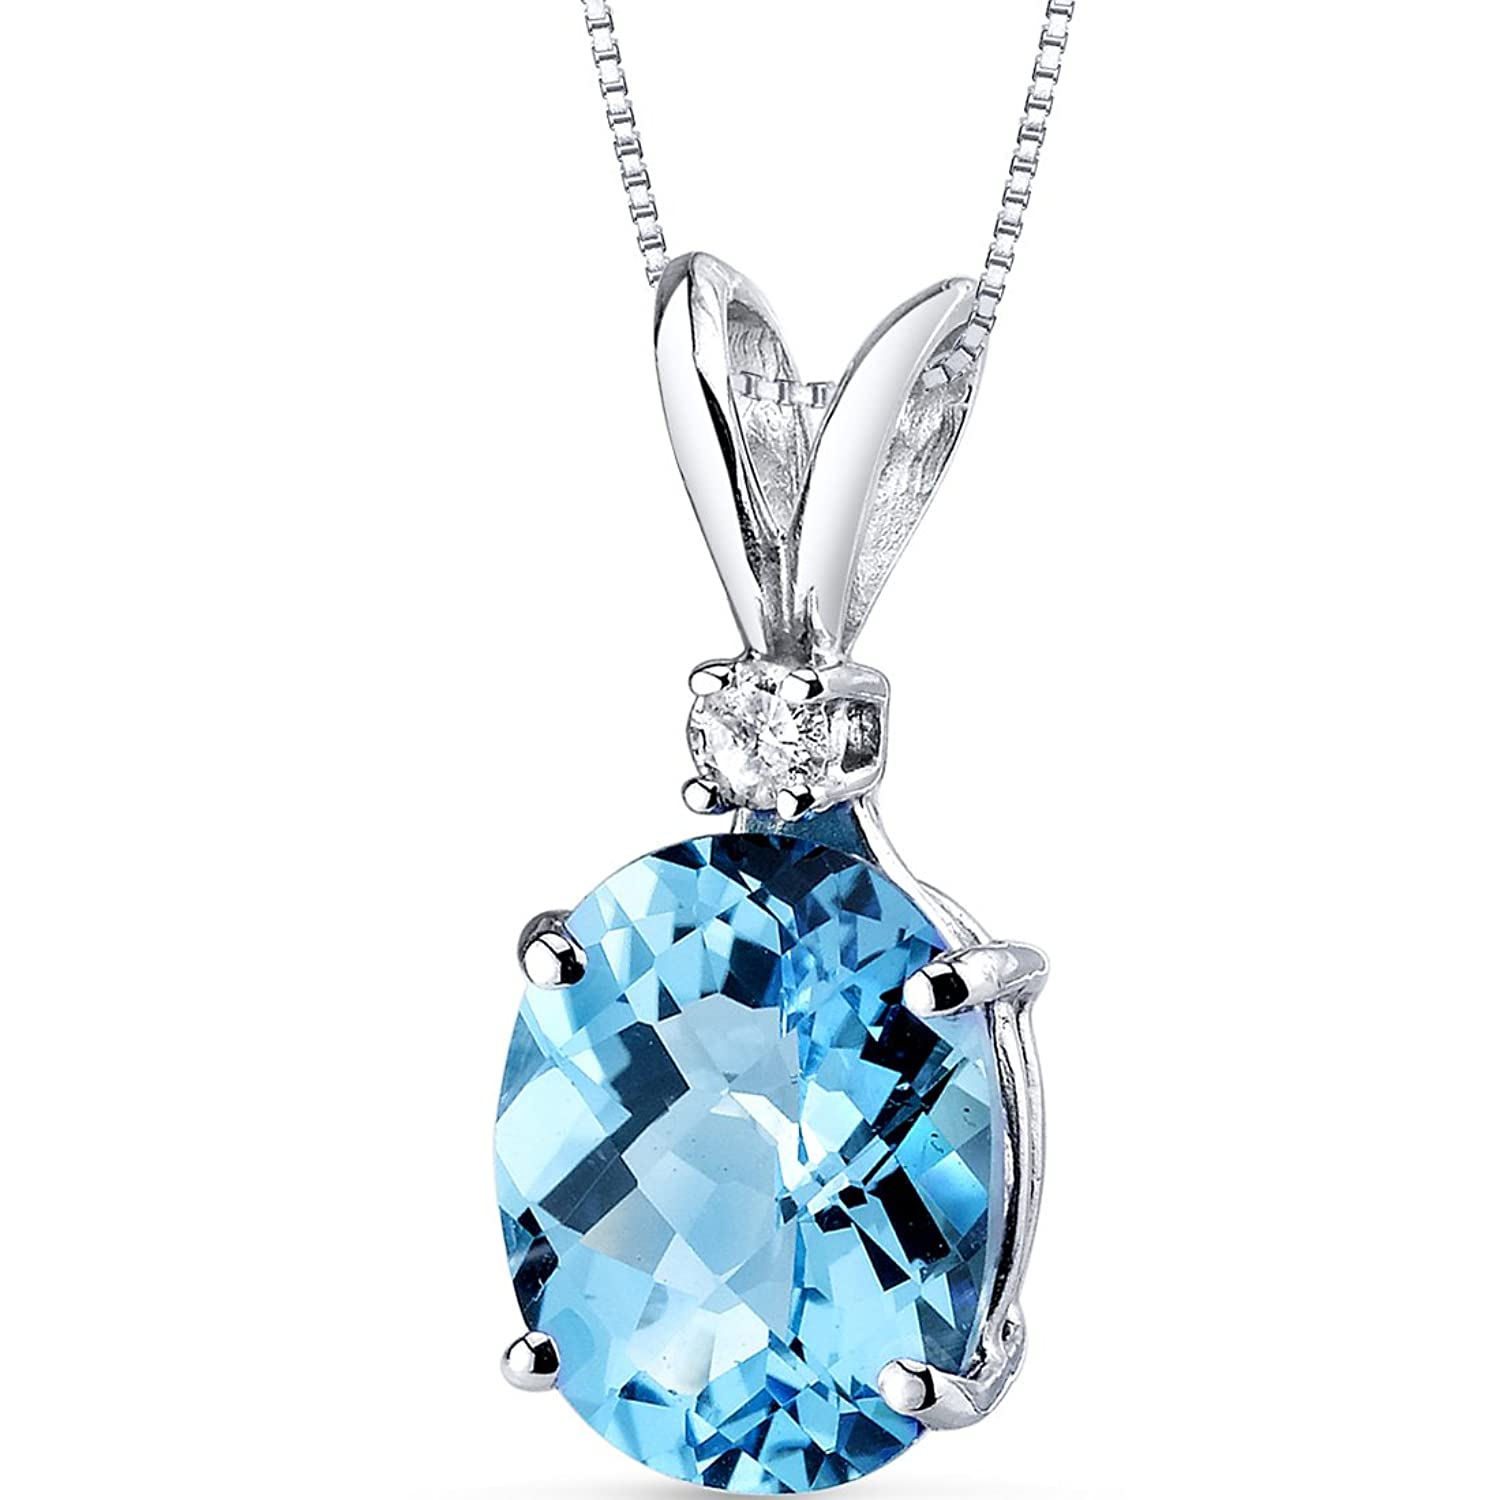 14 Karat White Gold Oval Shape 3.00 Carats Swiss Blue Topaz Diamond Pendant